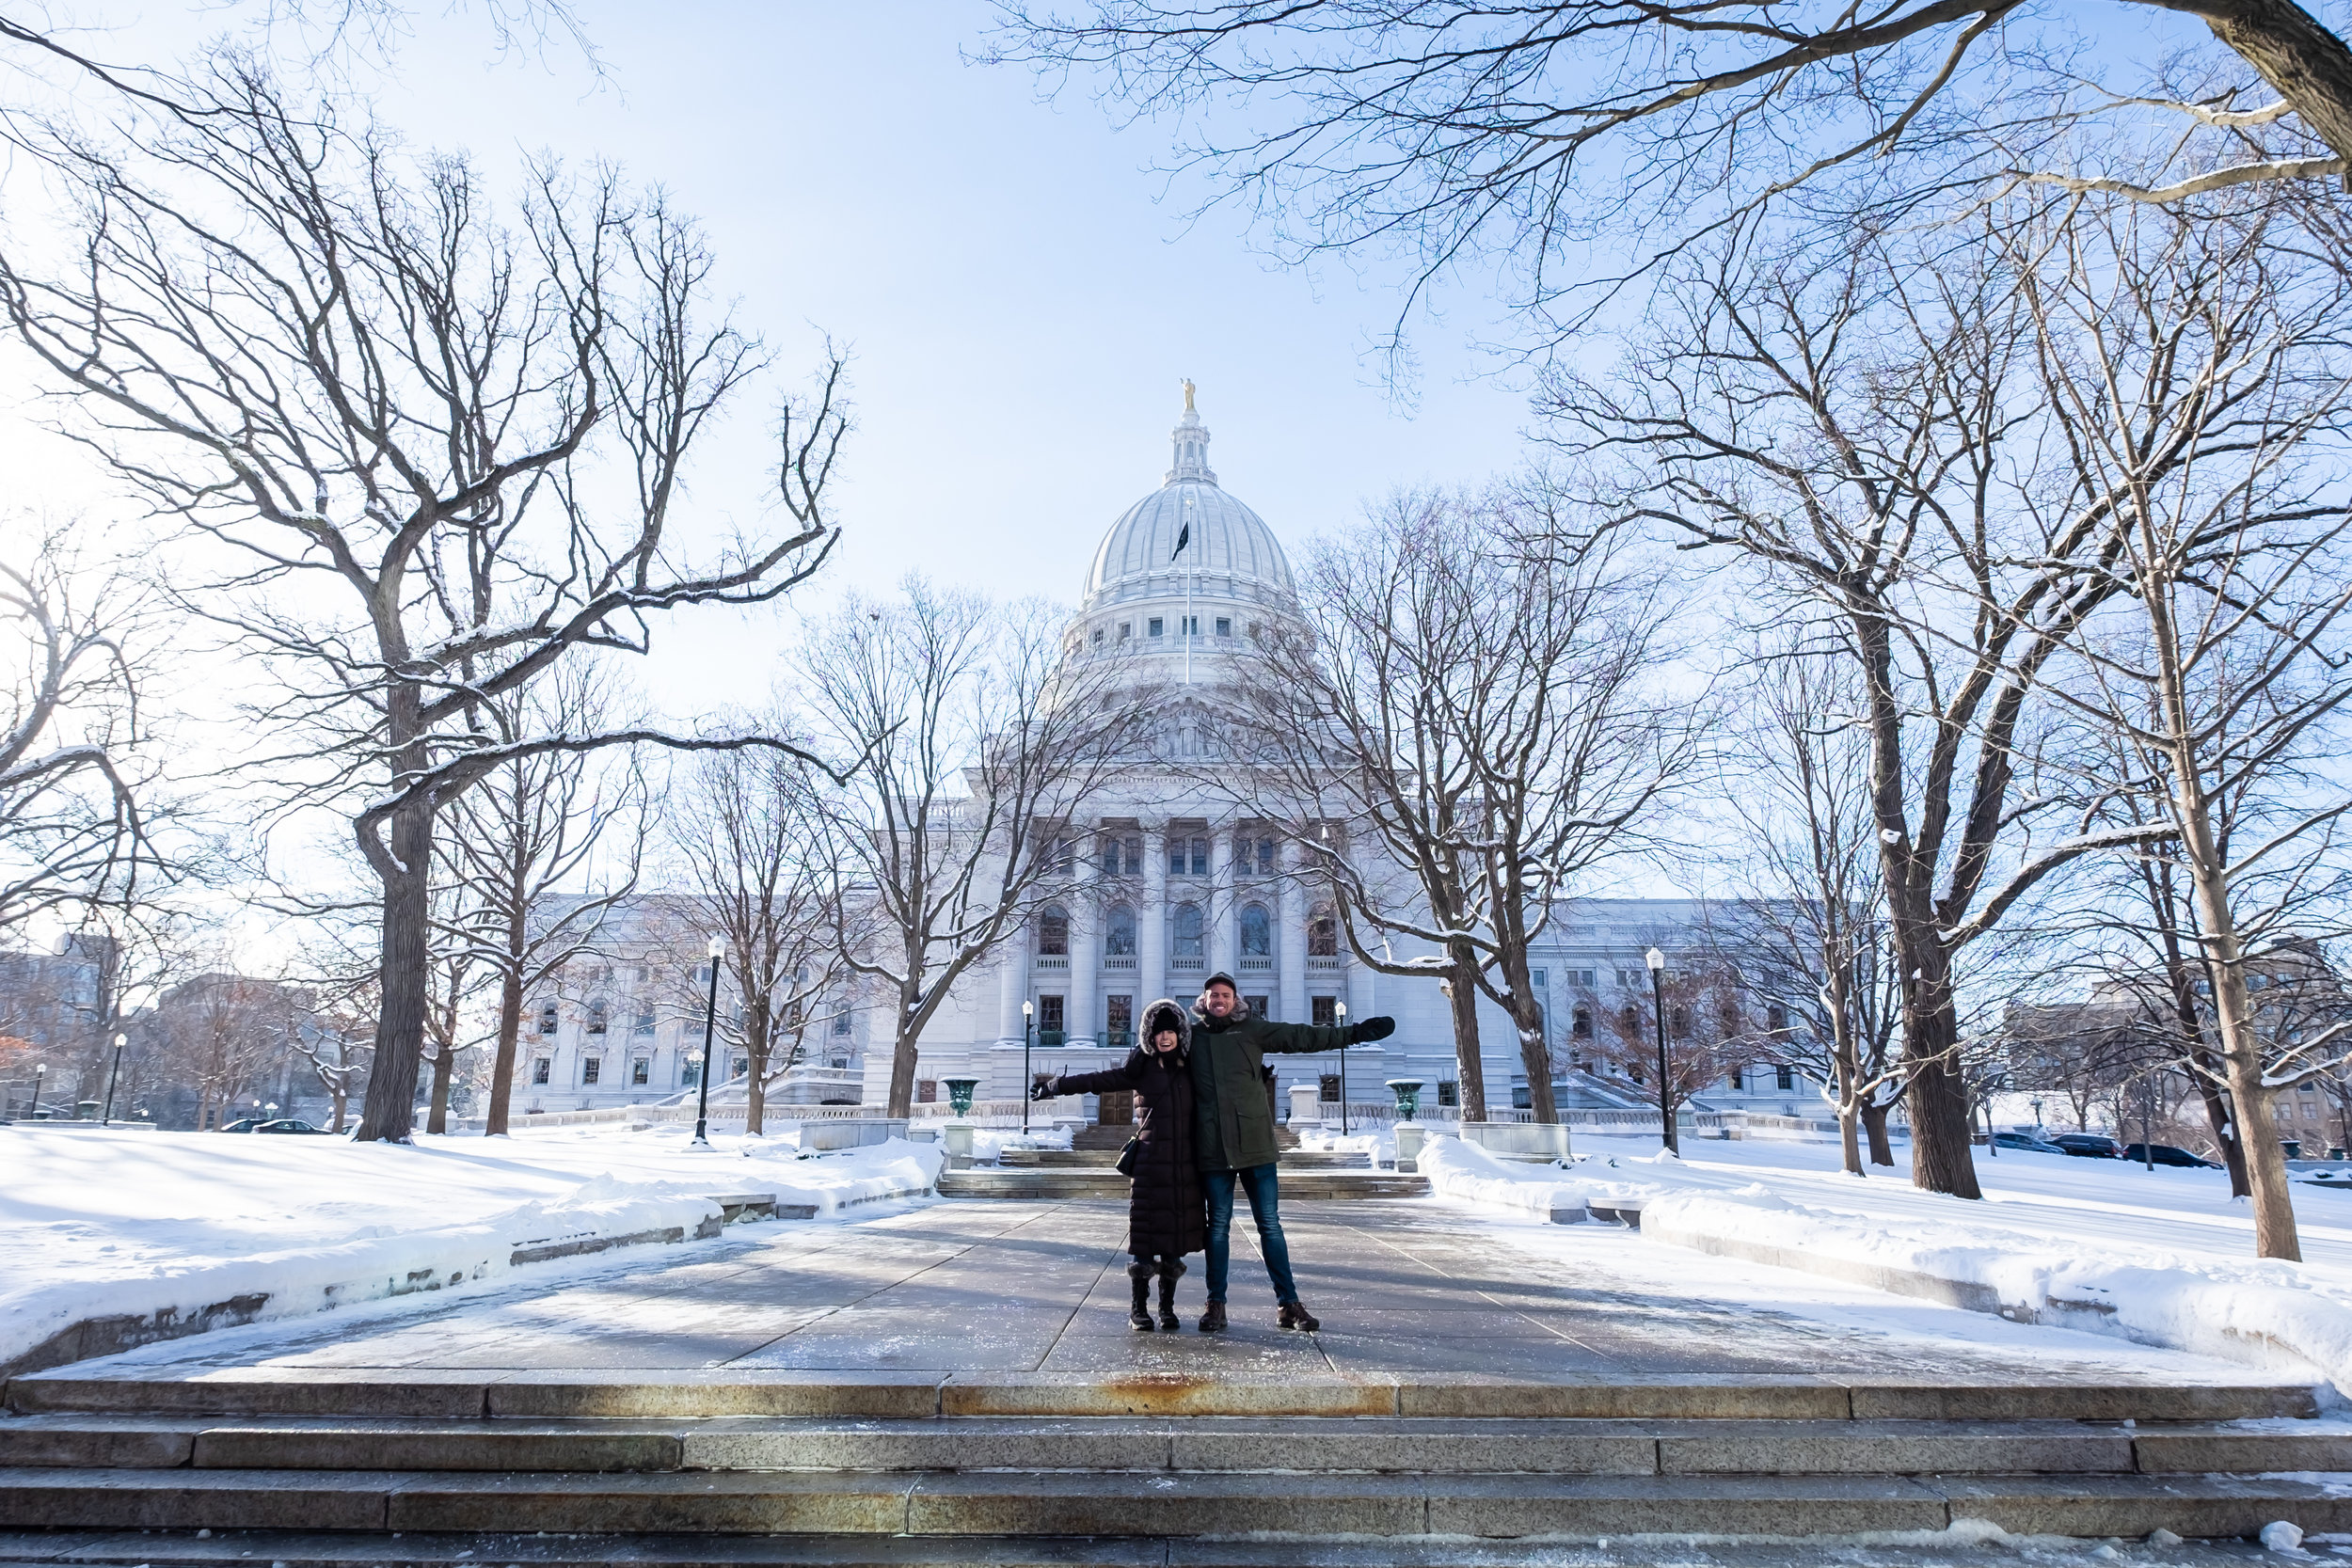 Great photo opps in front of the Capitol building!